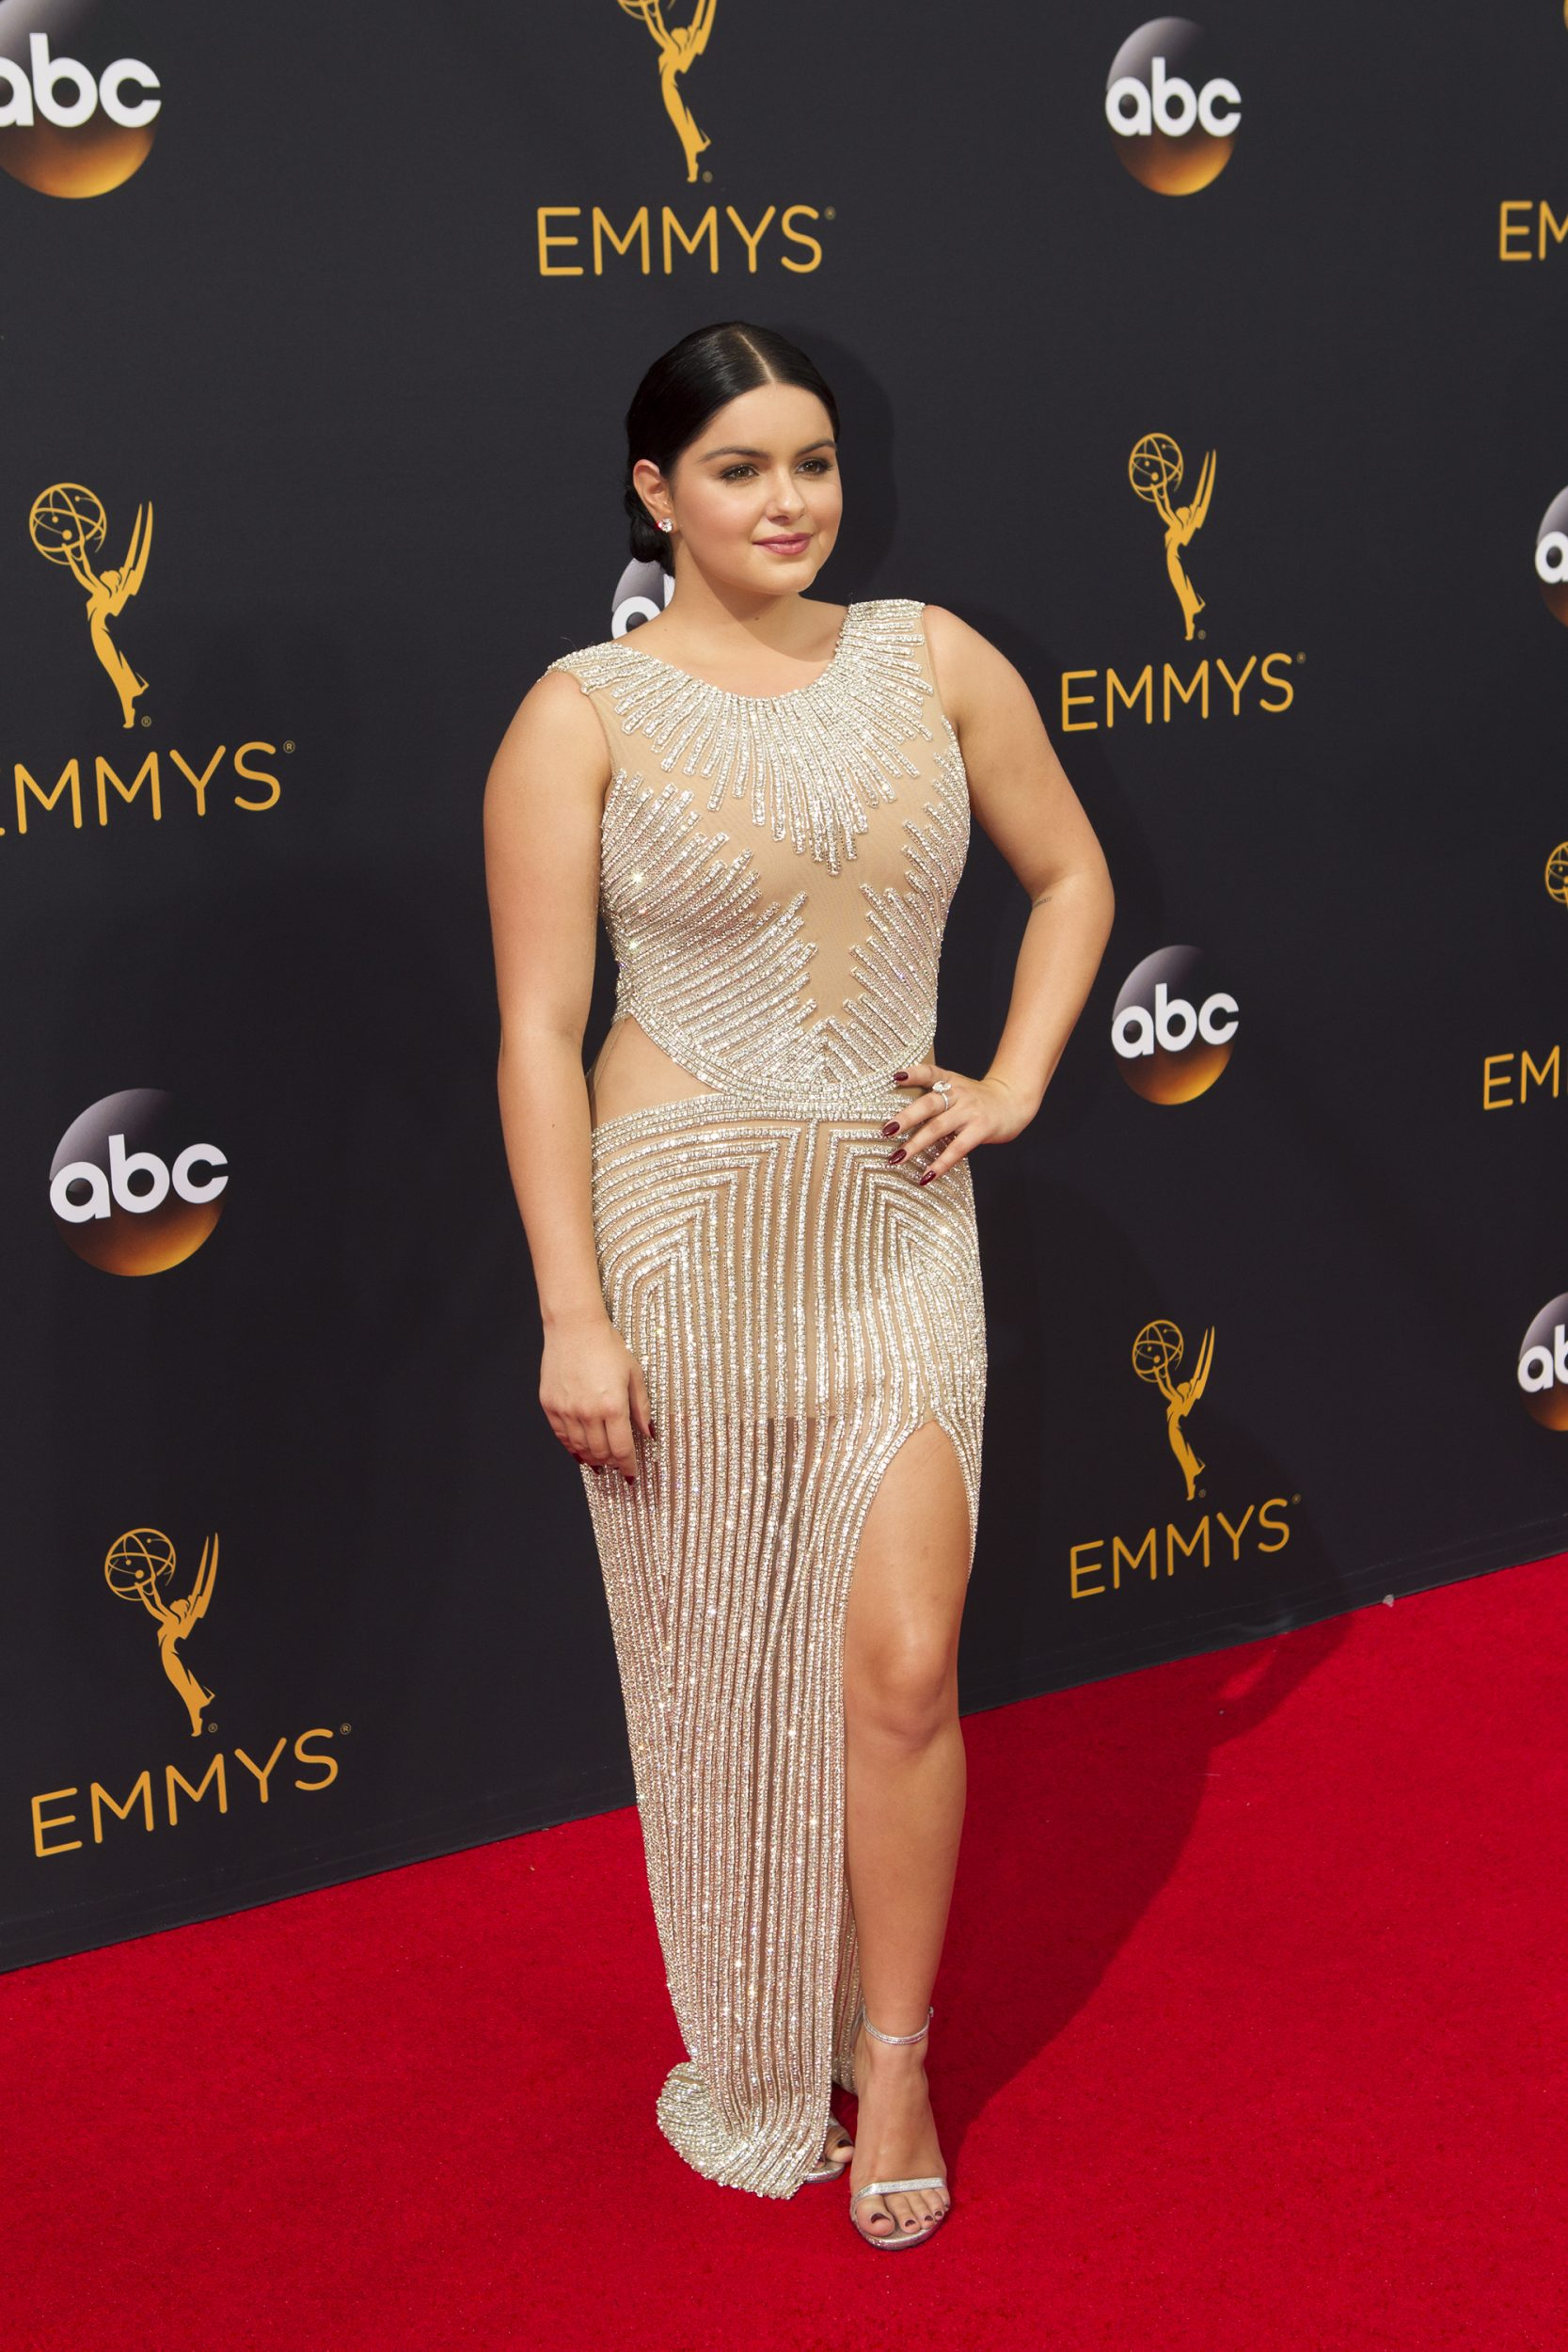 """THE 68TH EMMY(r) AWARDS - """"The 68th Emmy Awards"""" broadcasts live from The Microsoft Theater in Los Angeles, Sunday, September 18 (7:00-11:00 p.m. EDT/4:00-8:00 p.m. PDT), on ABC and is hosted by Jimmy Kimmel. (ABC/Rick Rowell) ARIEL WINTER"""